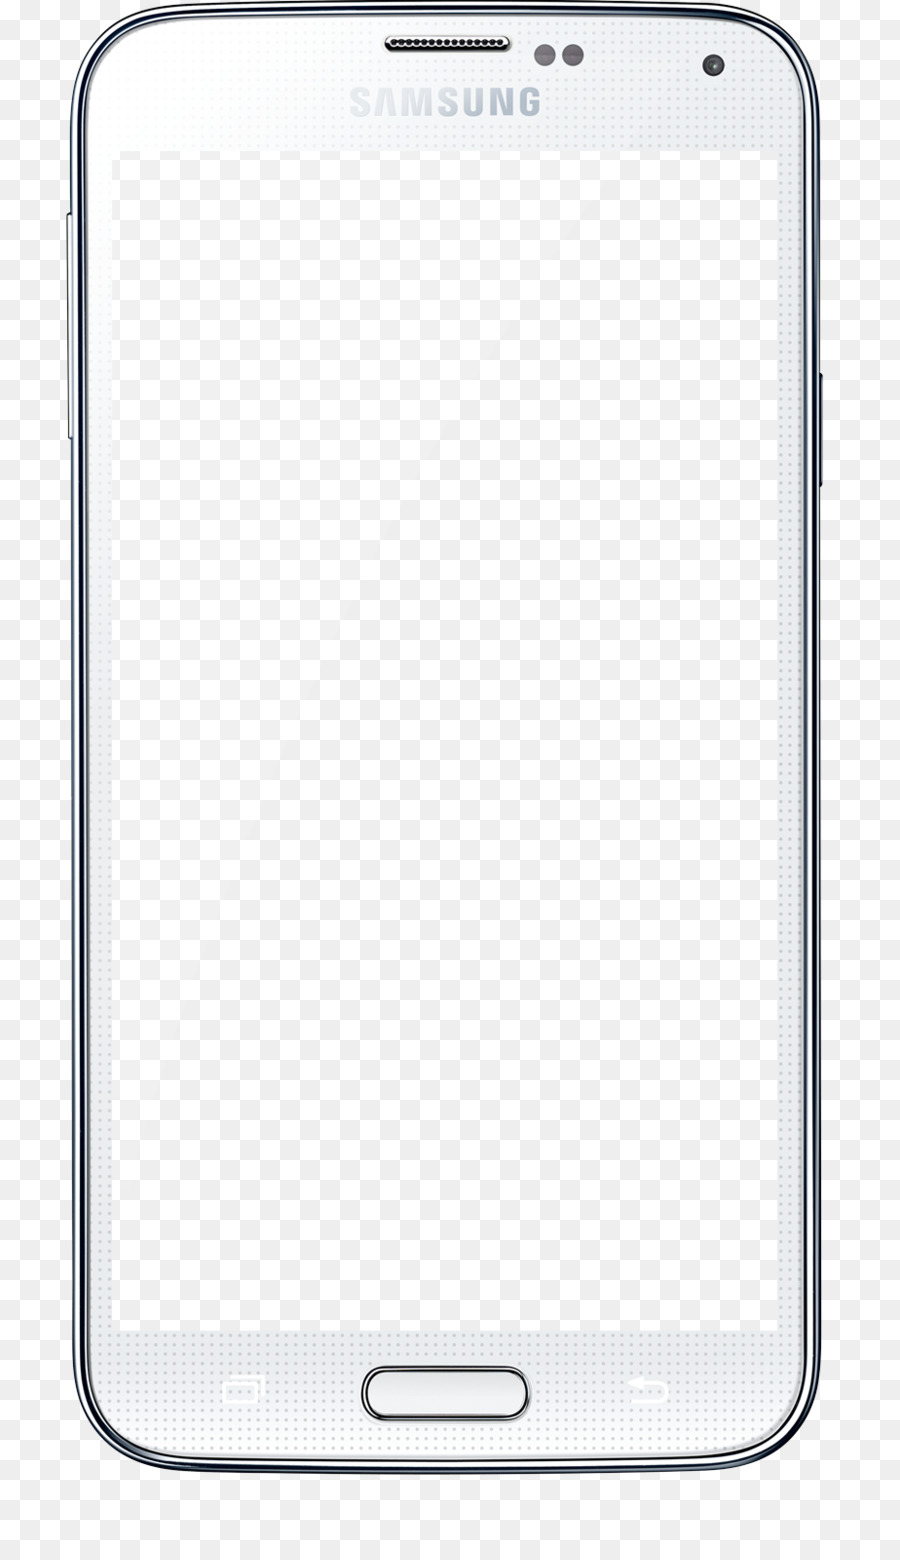 Iphone 6 frame clipart clip art royalty free stock Iphone Background clipart - Technology, Smartphone ... clip art royalty free stock